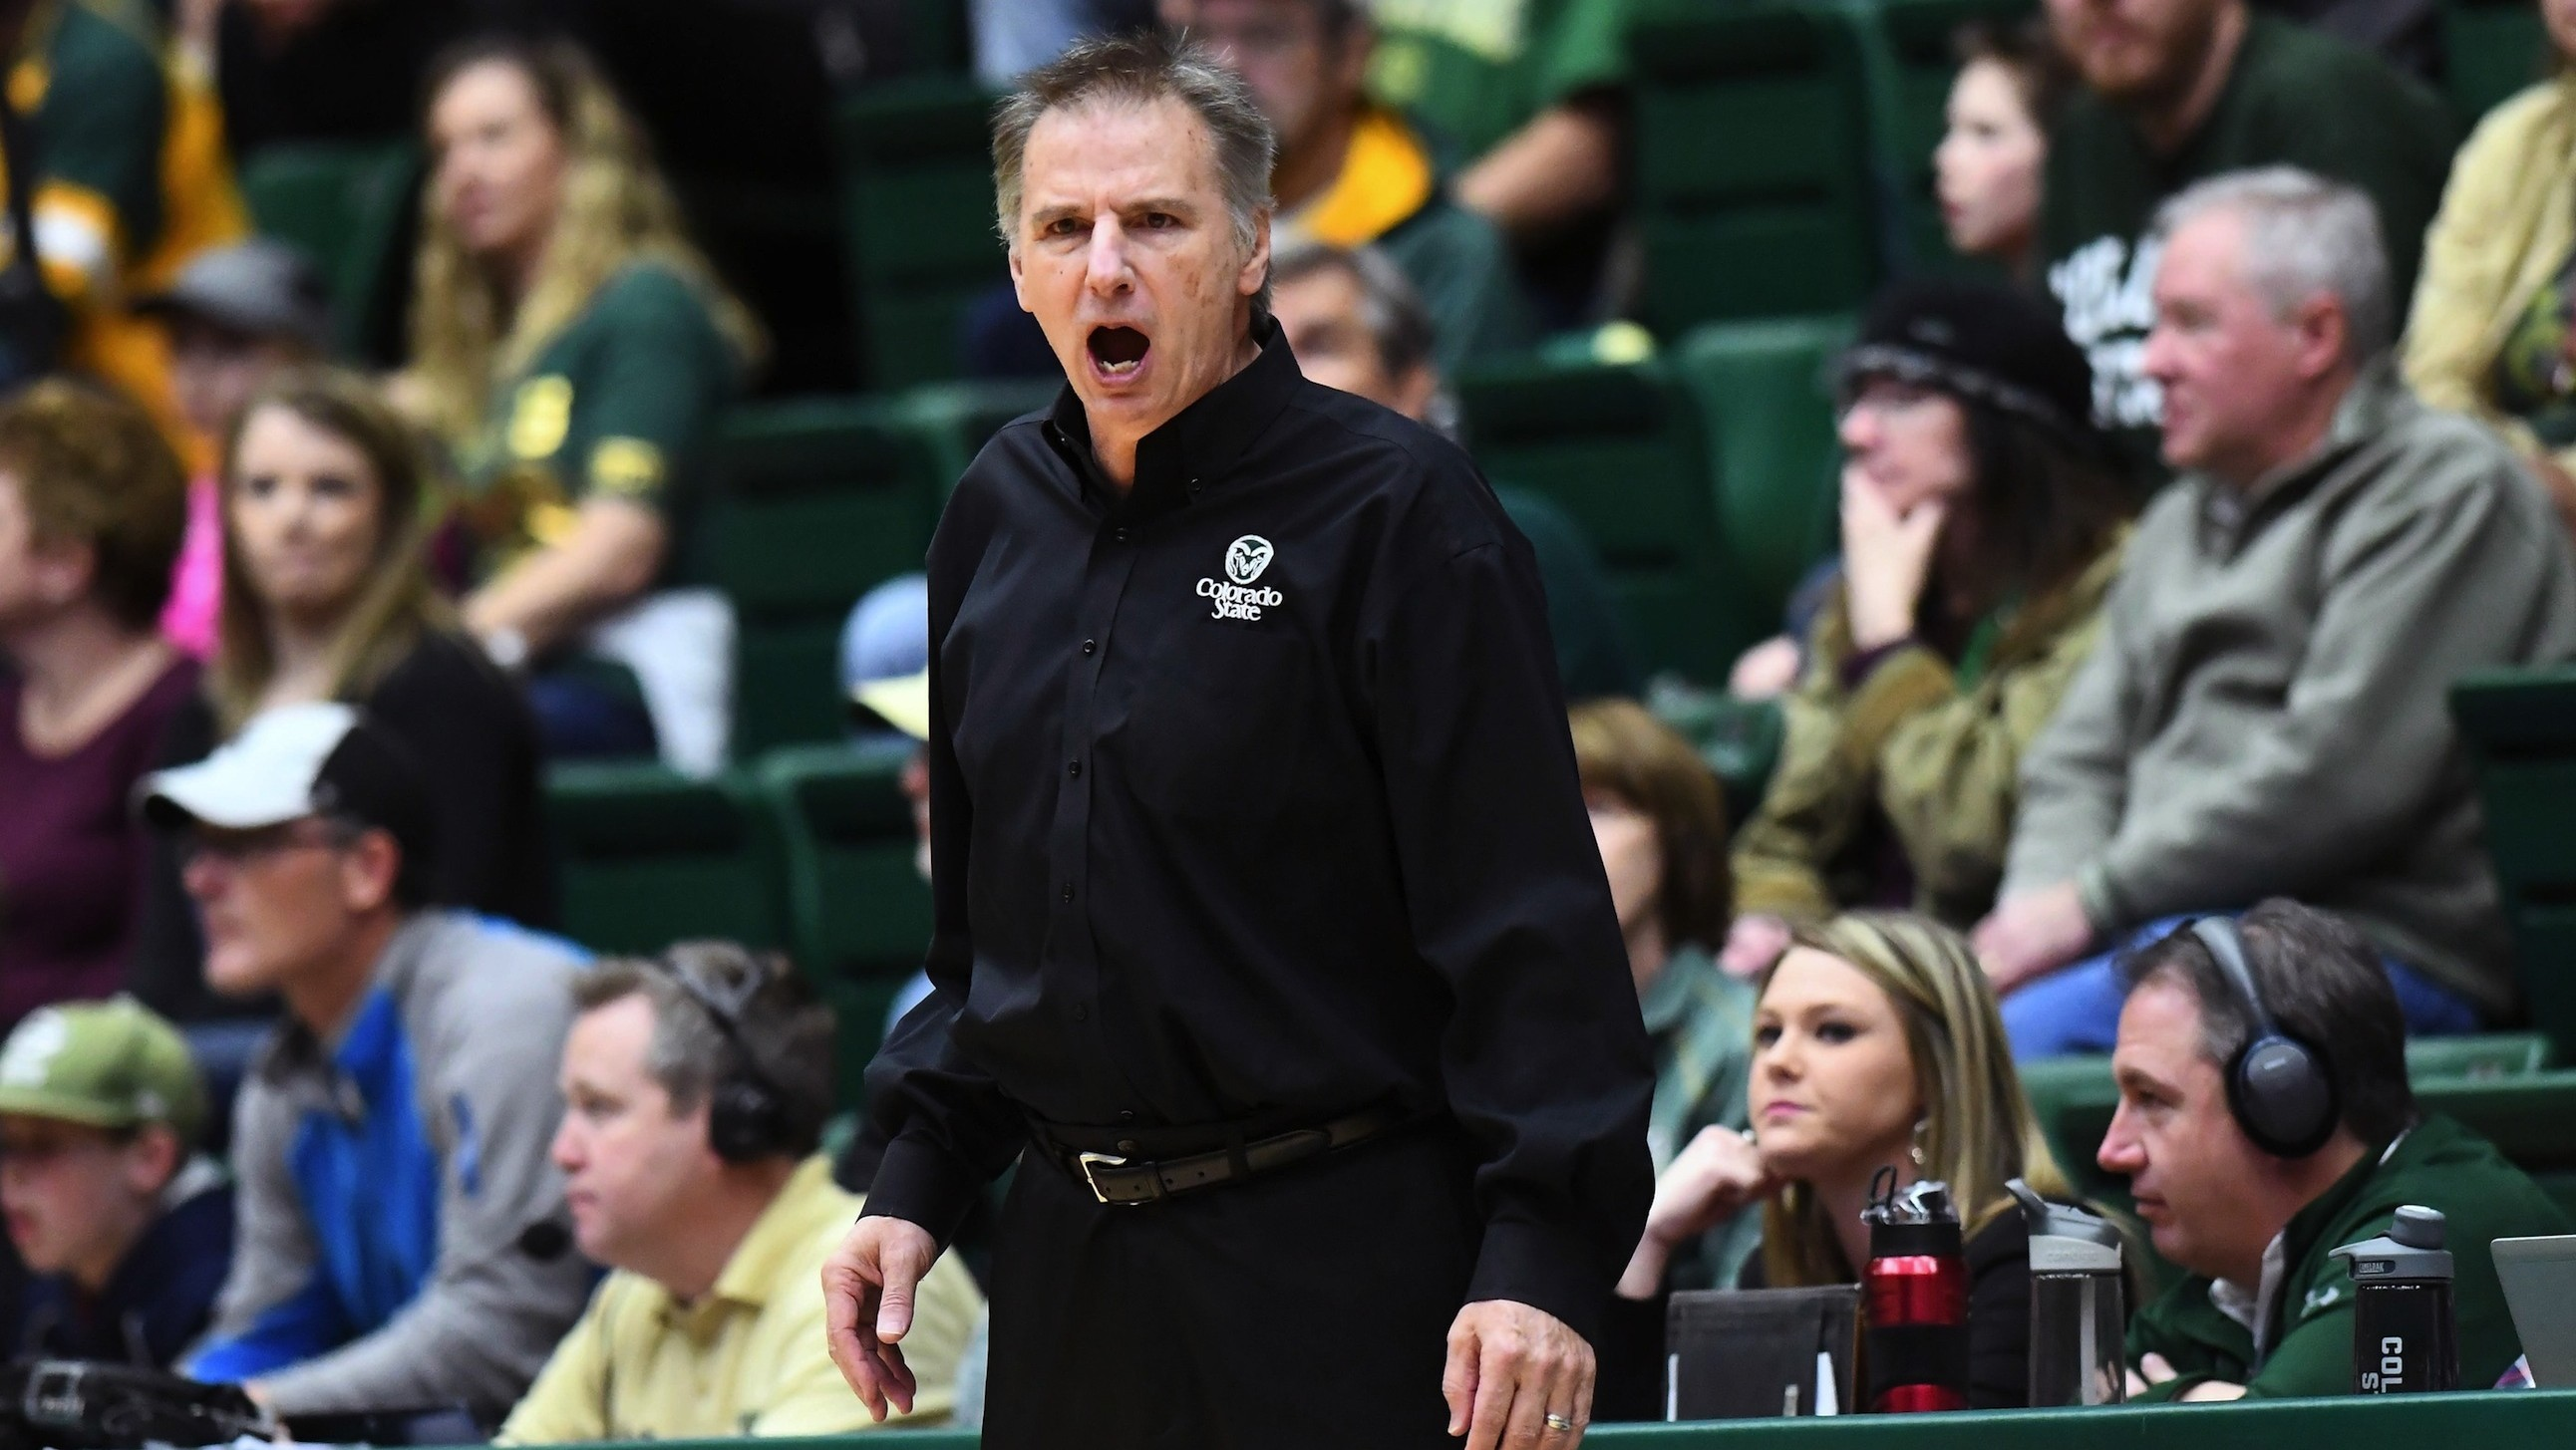 CSU's Larry Eustachy Overcomes Emotionally Abusing His Players to Win Coach of the Year